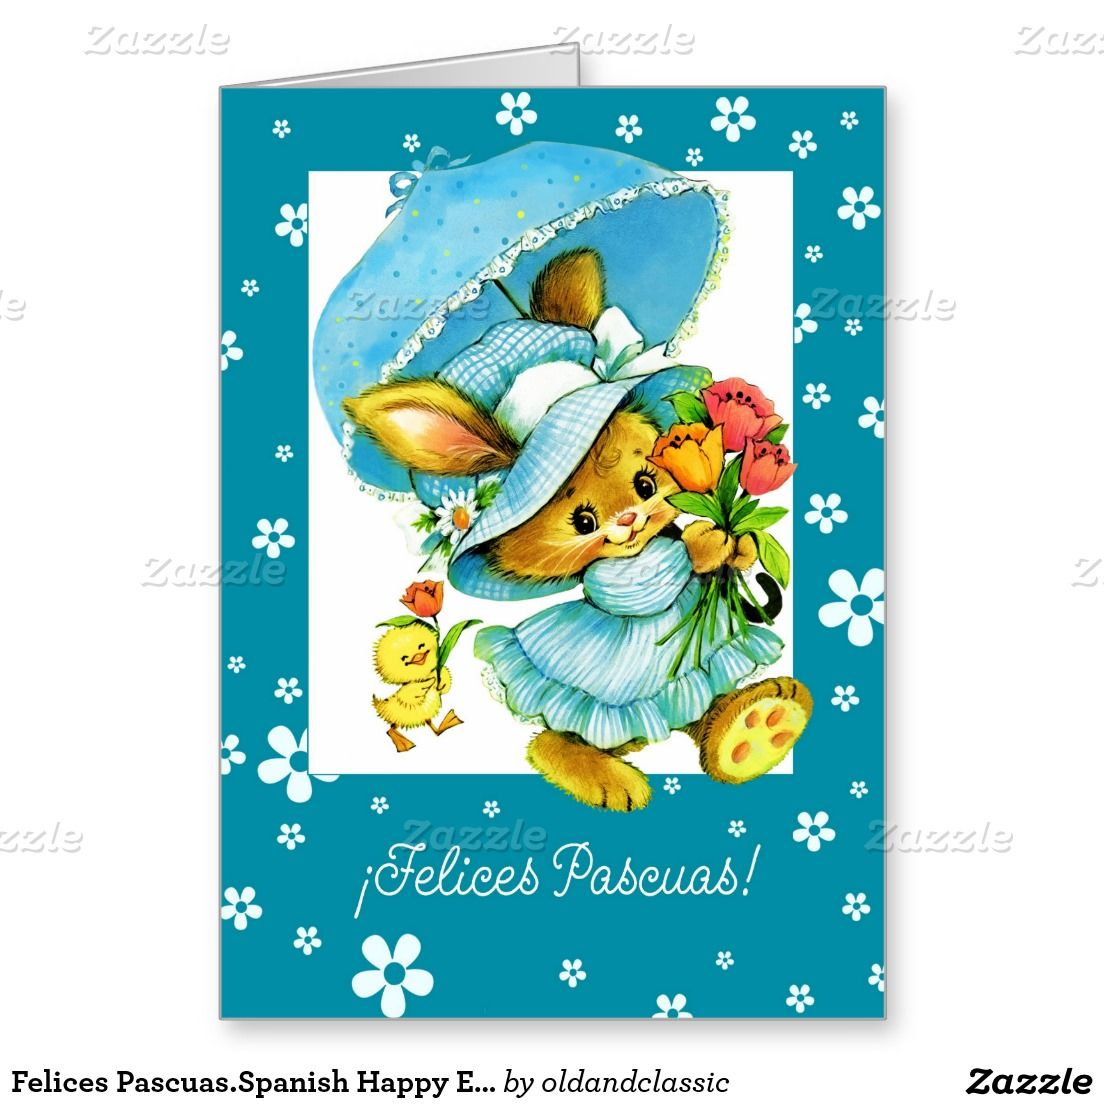 Felices pascuasspanish happy easter greeting card hello spring easter greeting cards for kids in spanish with retro easter bunny and chick postcard image matching cards in various languages postage stamps and other m4hsunfo